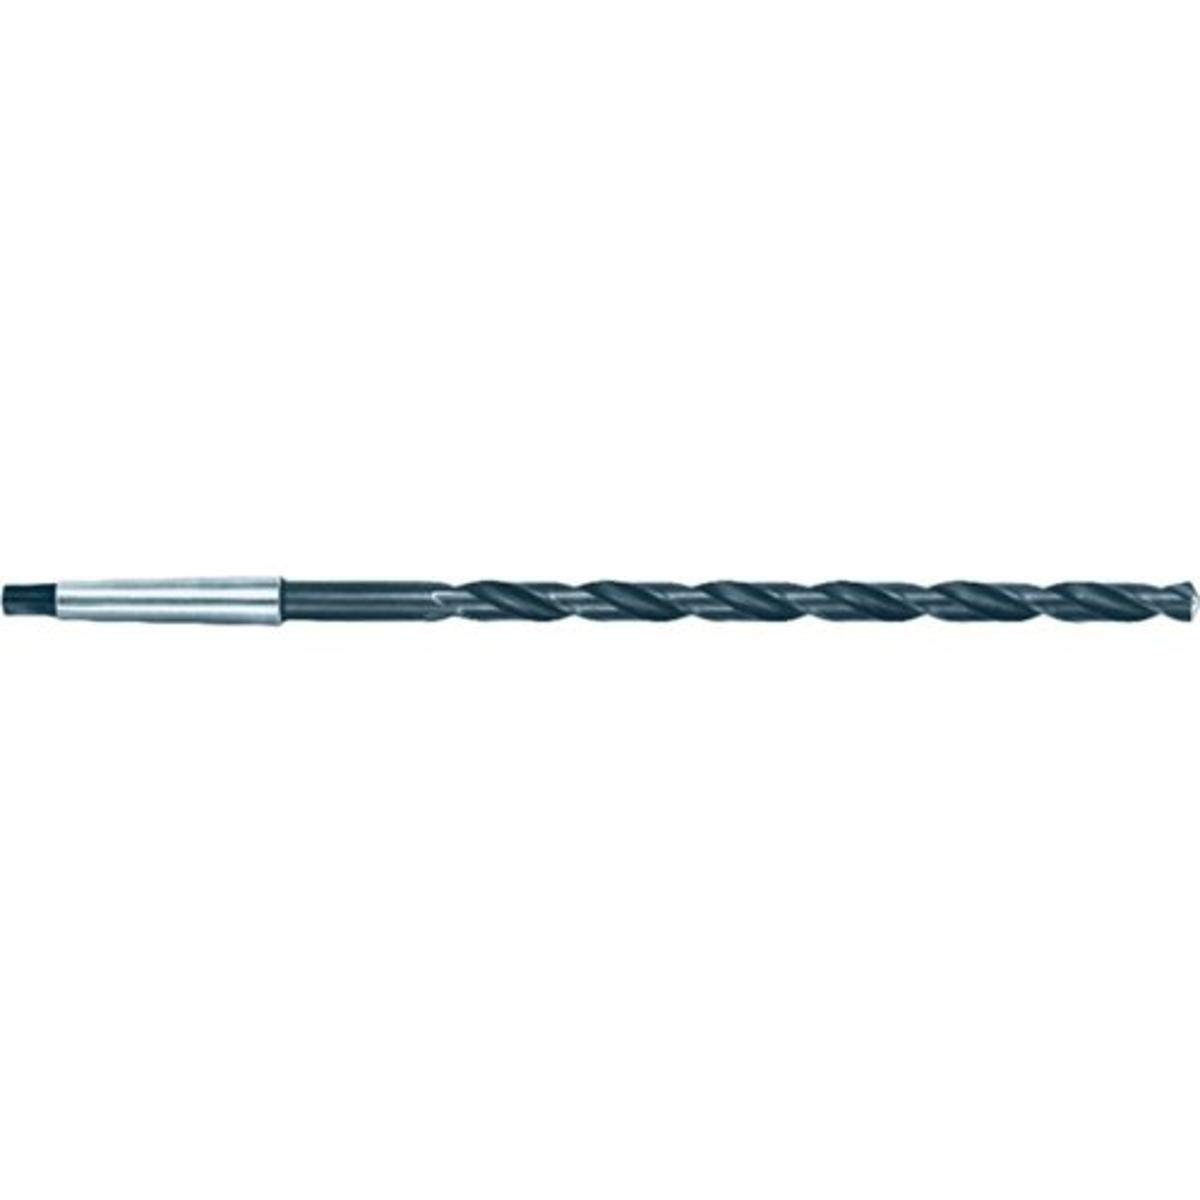 Seco 43021 Extra Special price Length Drill Bits 5.50 Seattle Mall Siz SD216A mm Bit